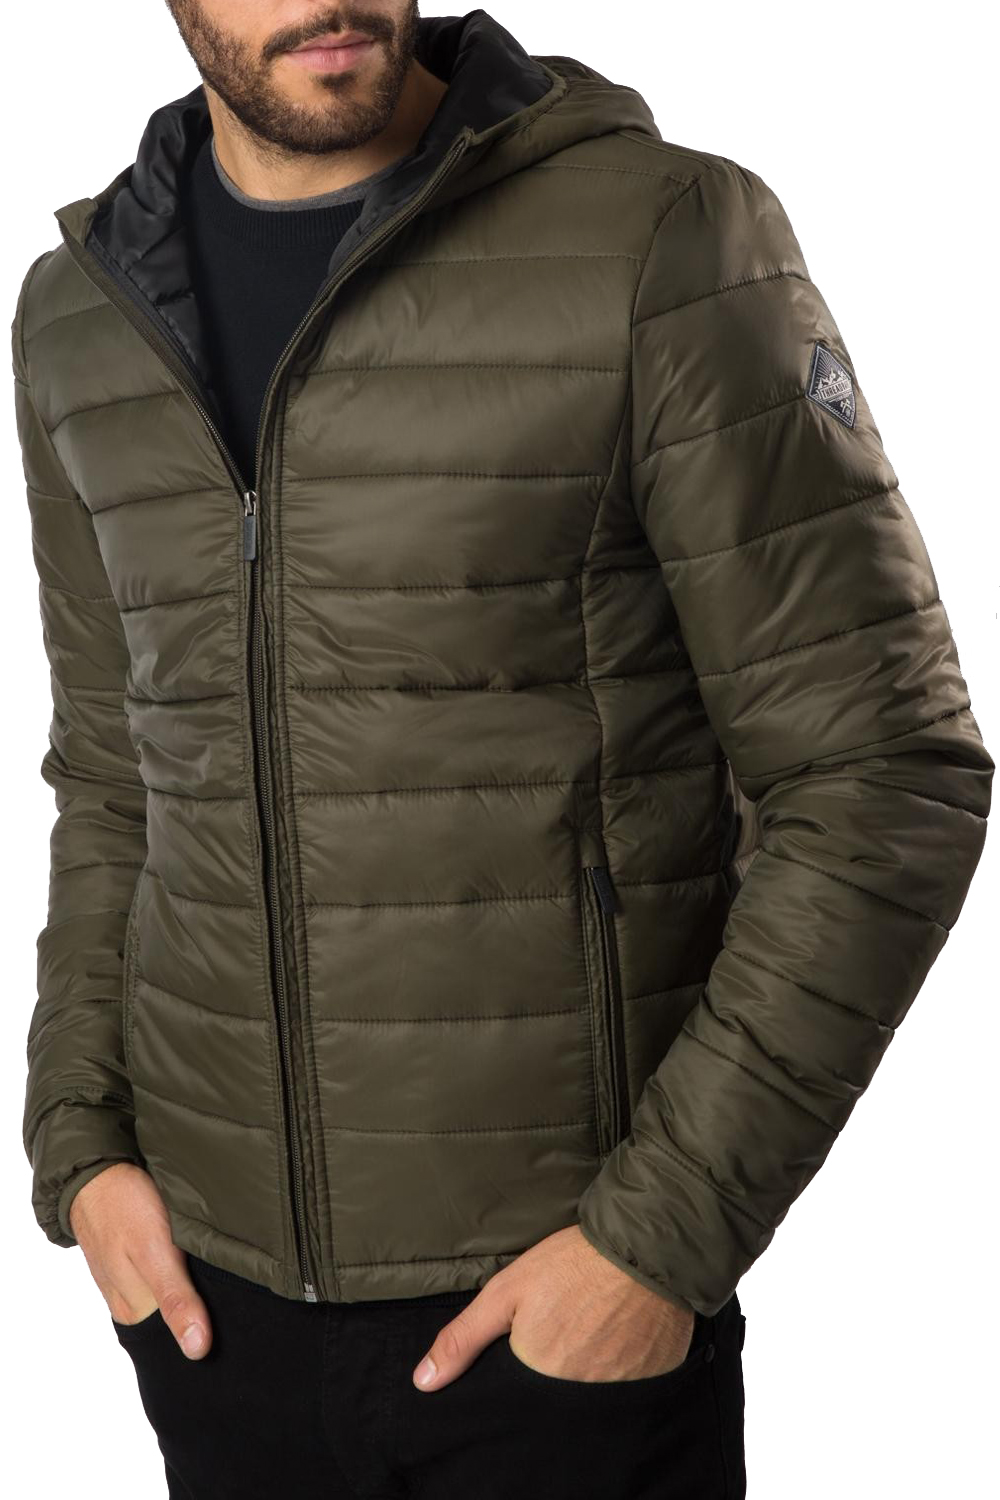 Our men's padded winter jackets style comes in different colors, fabrics and in sizes. If you are planning to buy designer men's padded winter jackets online then you are at right place because we have lots of collection of men's padded winter jackets at affordable price that will give you extra comfort and relax.